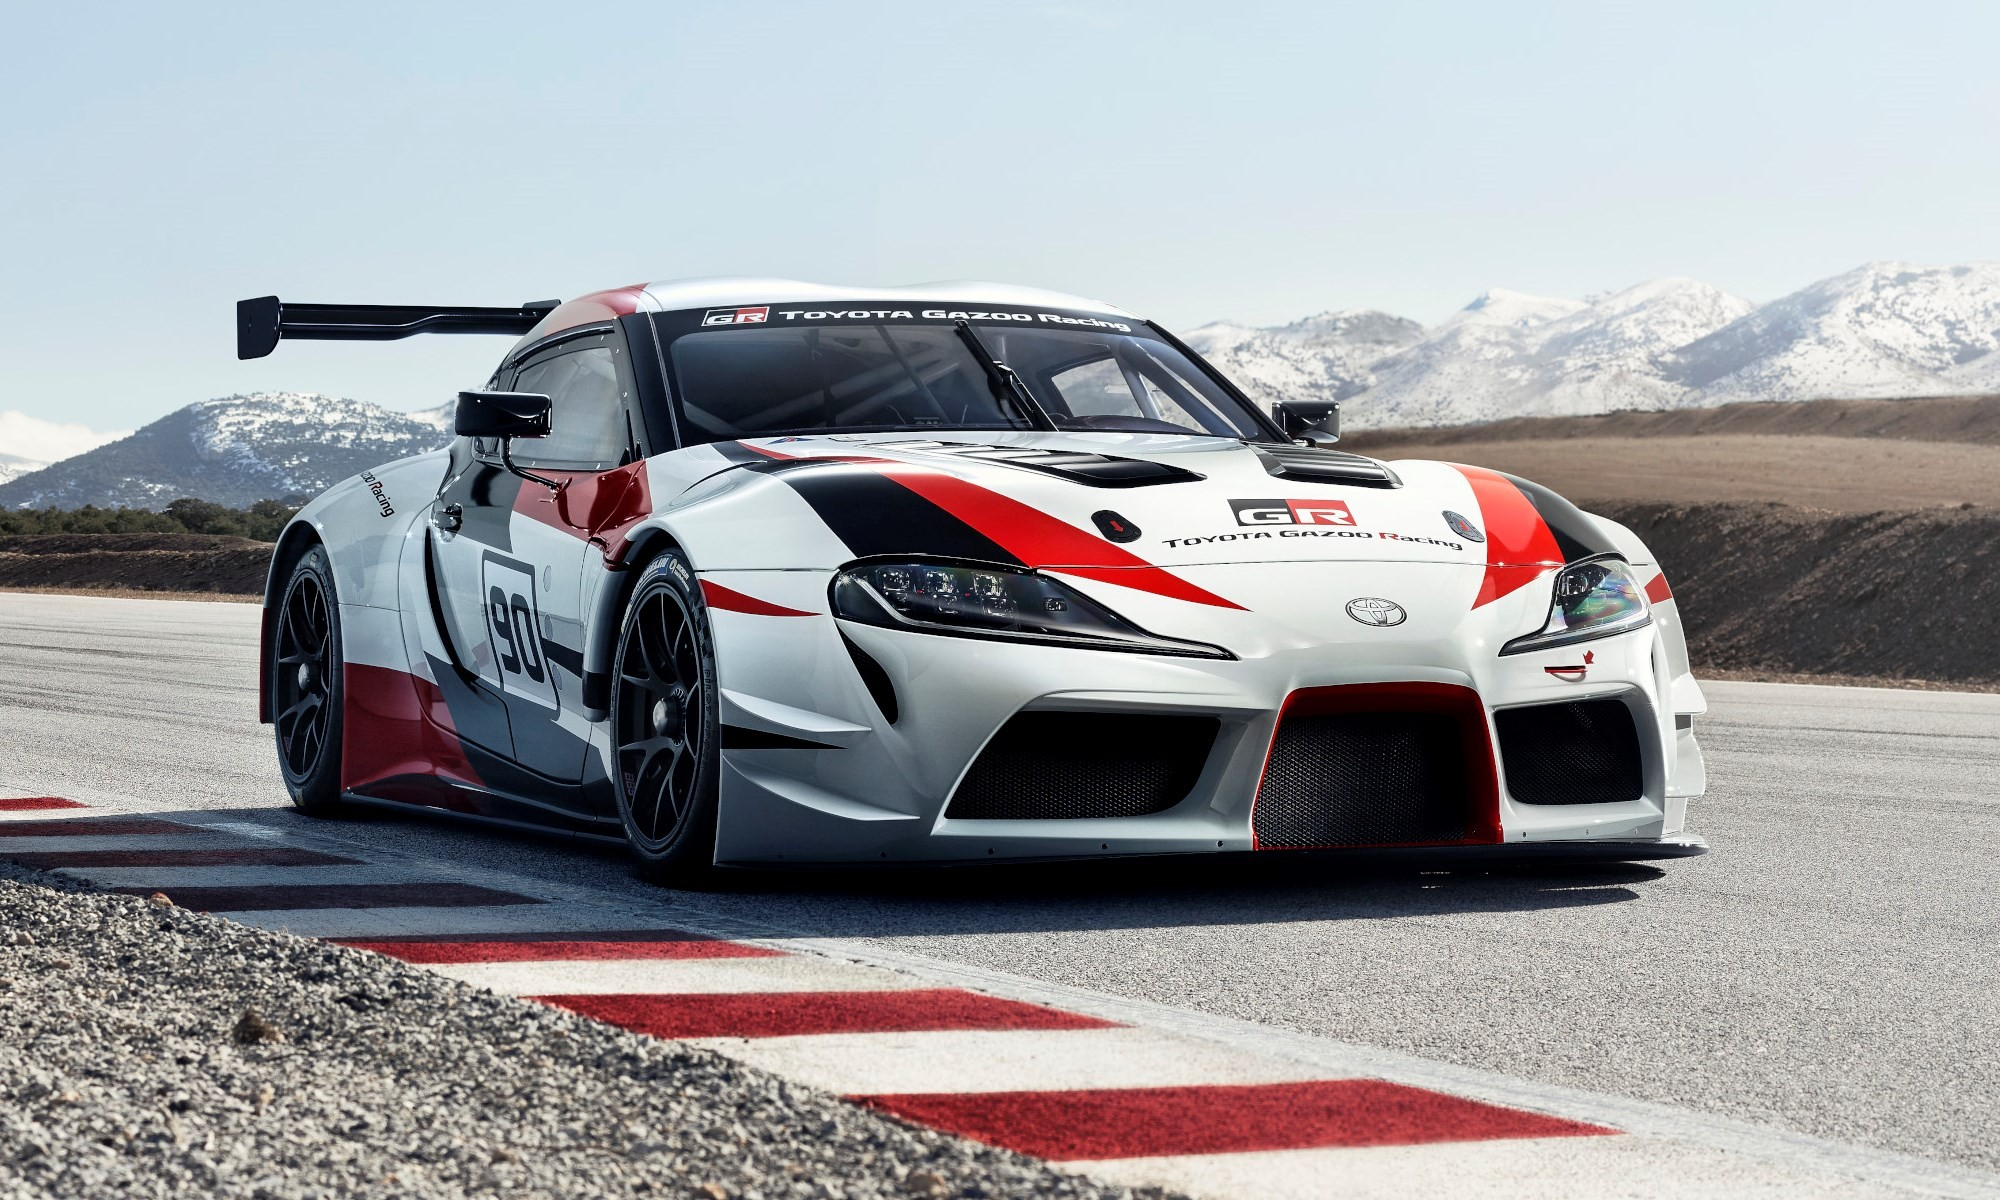 The Gazoo Racing Toyota Supra concept will also be on display at Goodwood